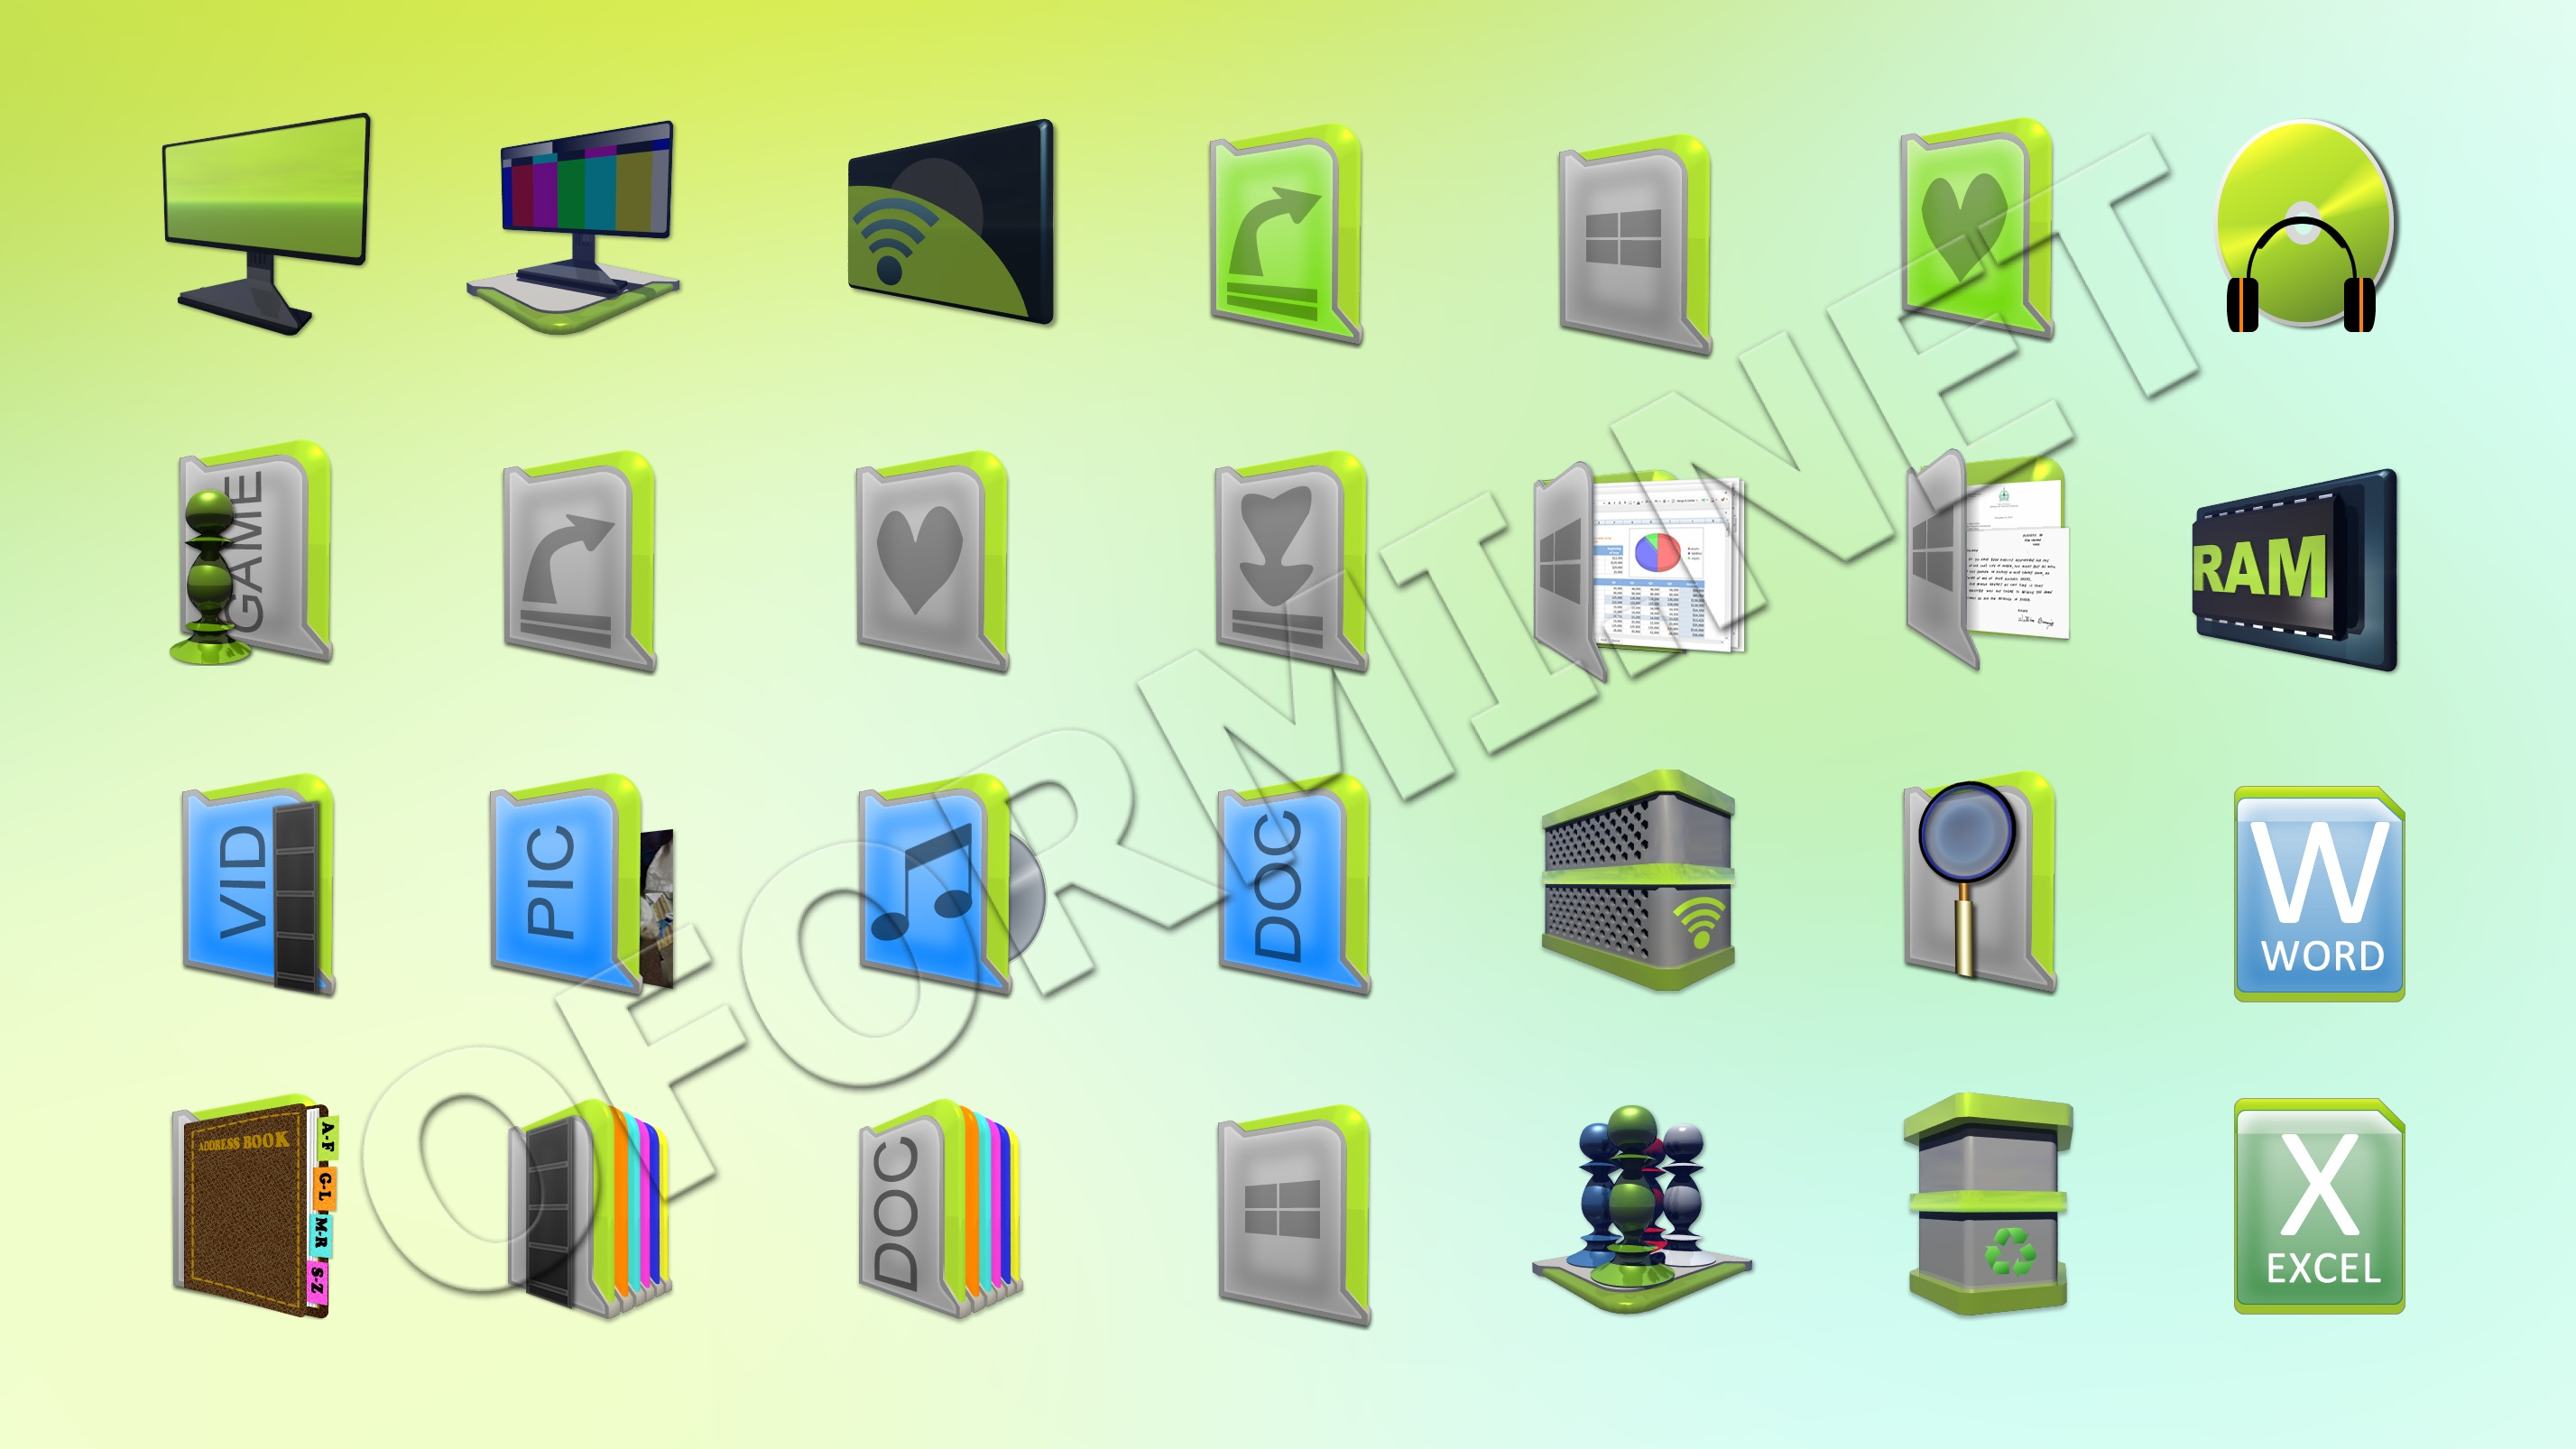 иконки для iconpackager: